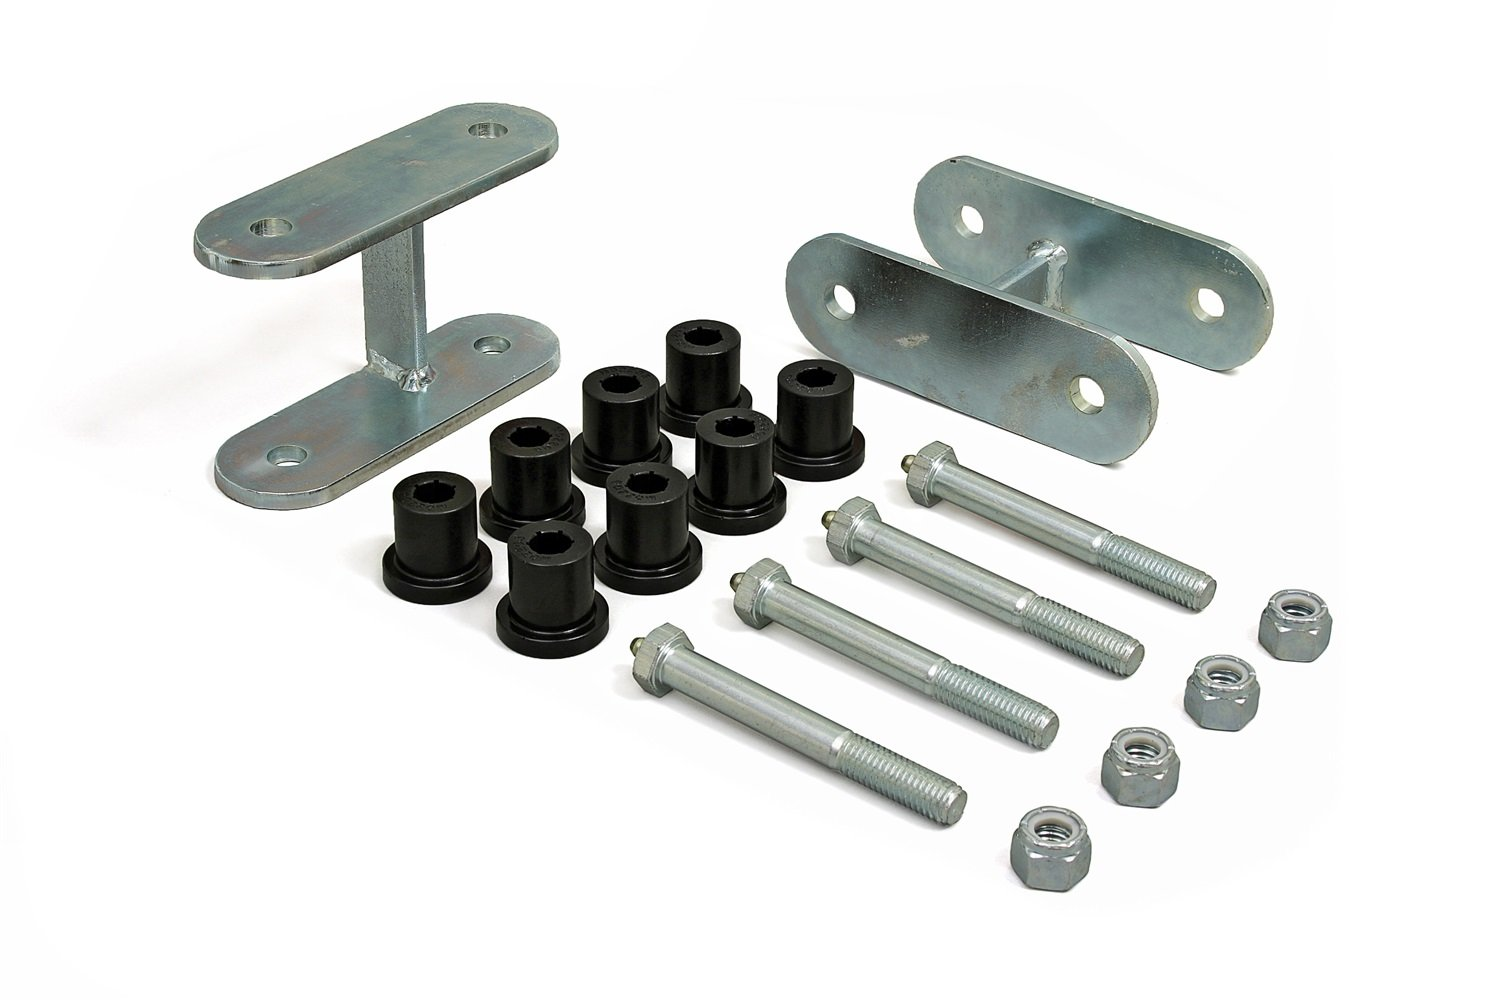 Daystar, Jeep CJ ½ Rear Lift Greasable Shackle, fits 1976 to 1986 2/4WD, KJ61005BK, Made in America